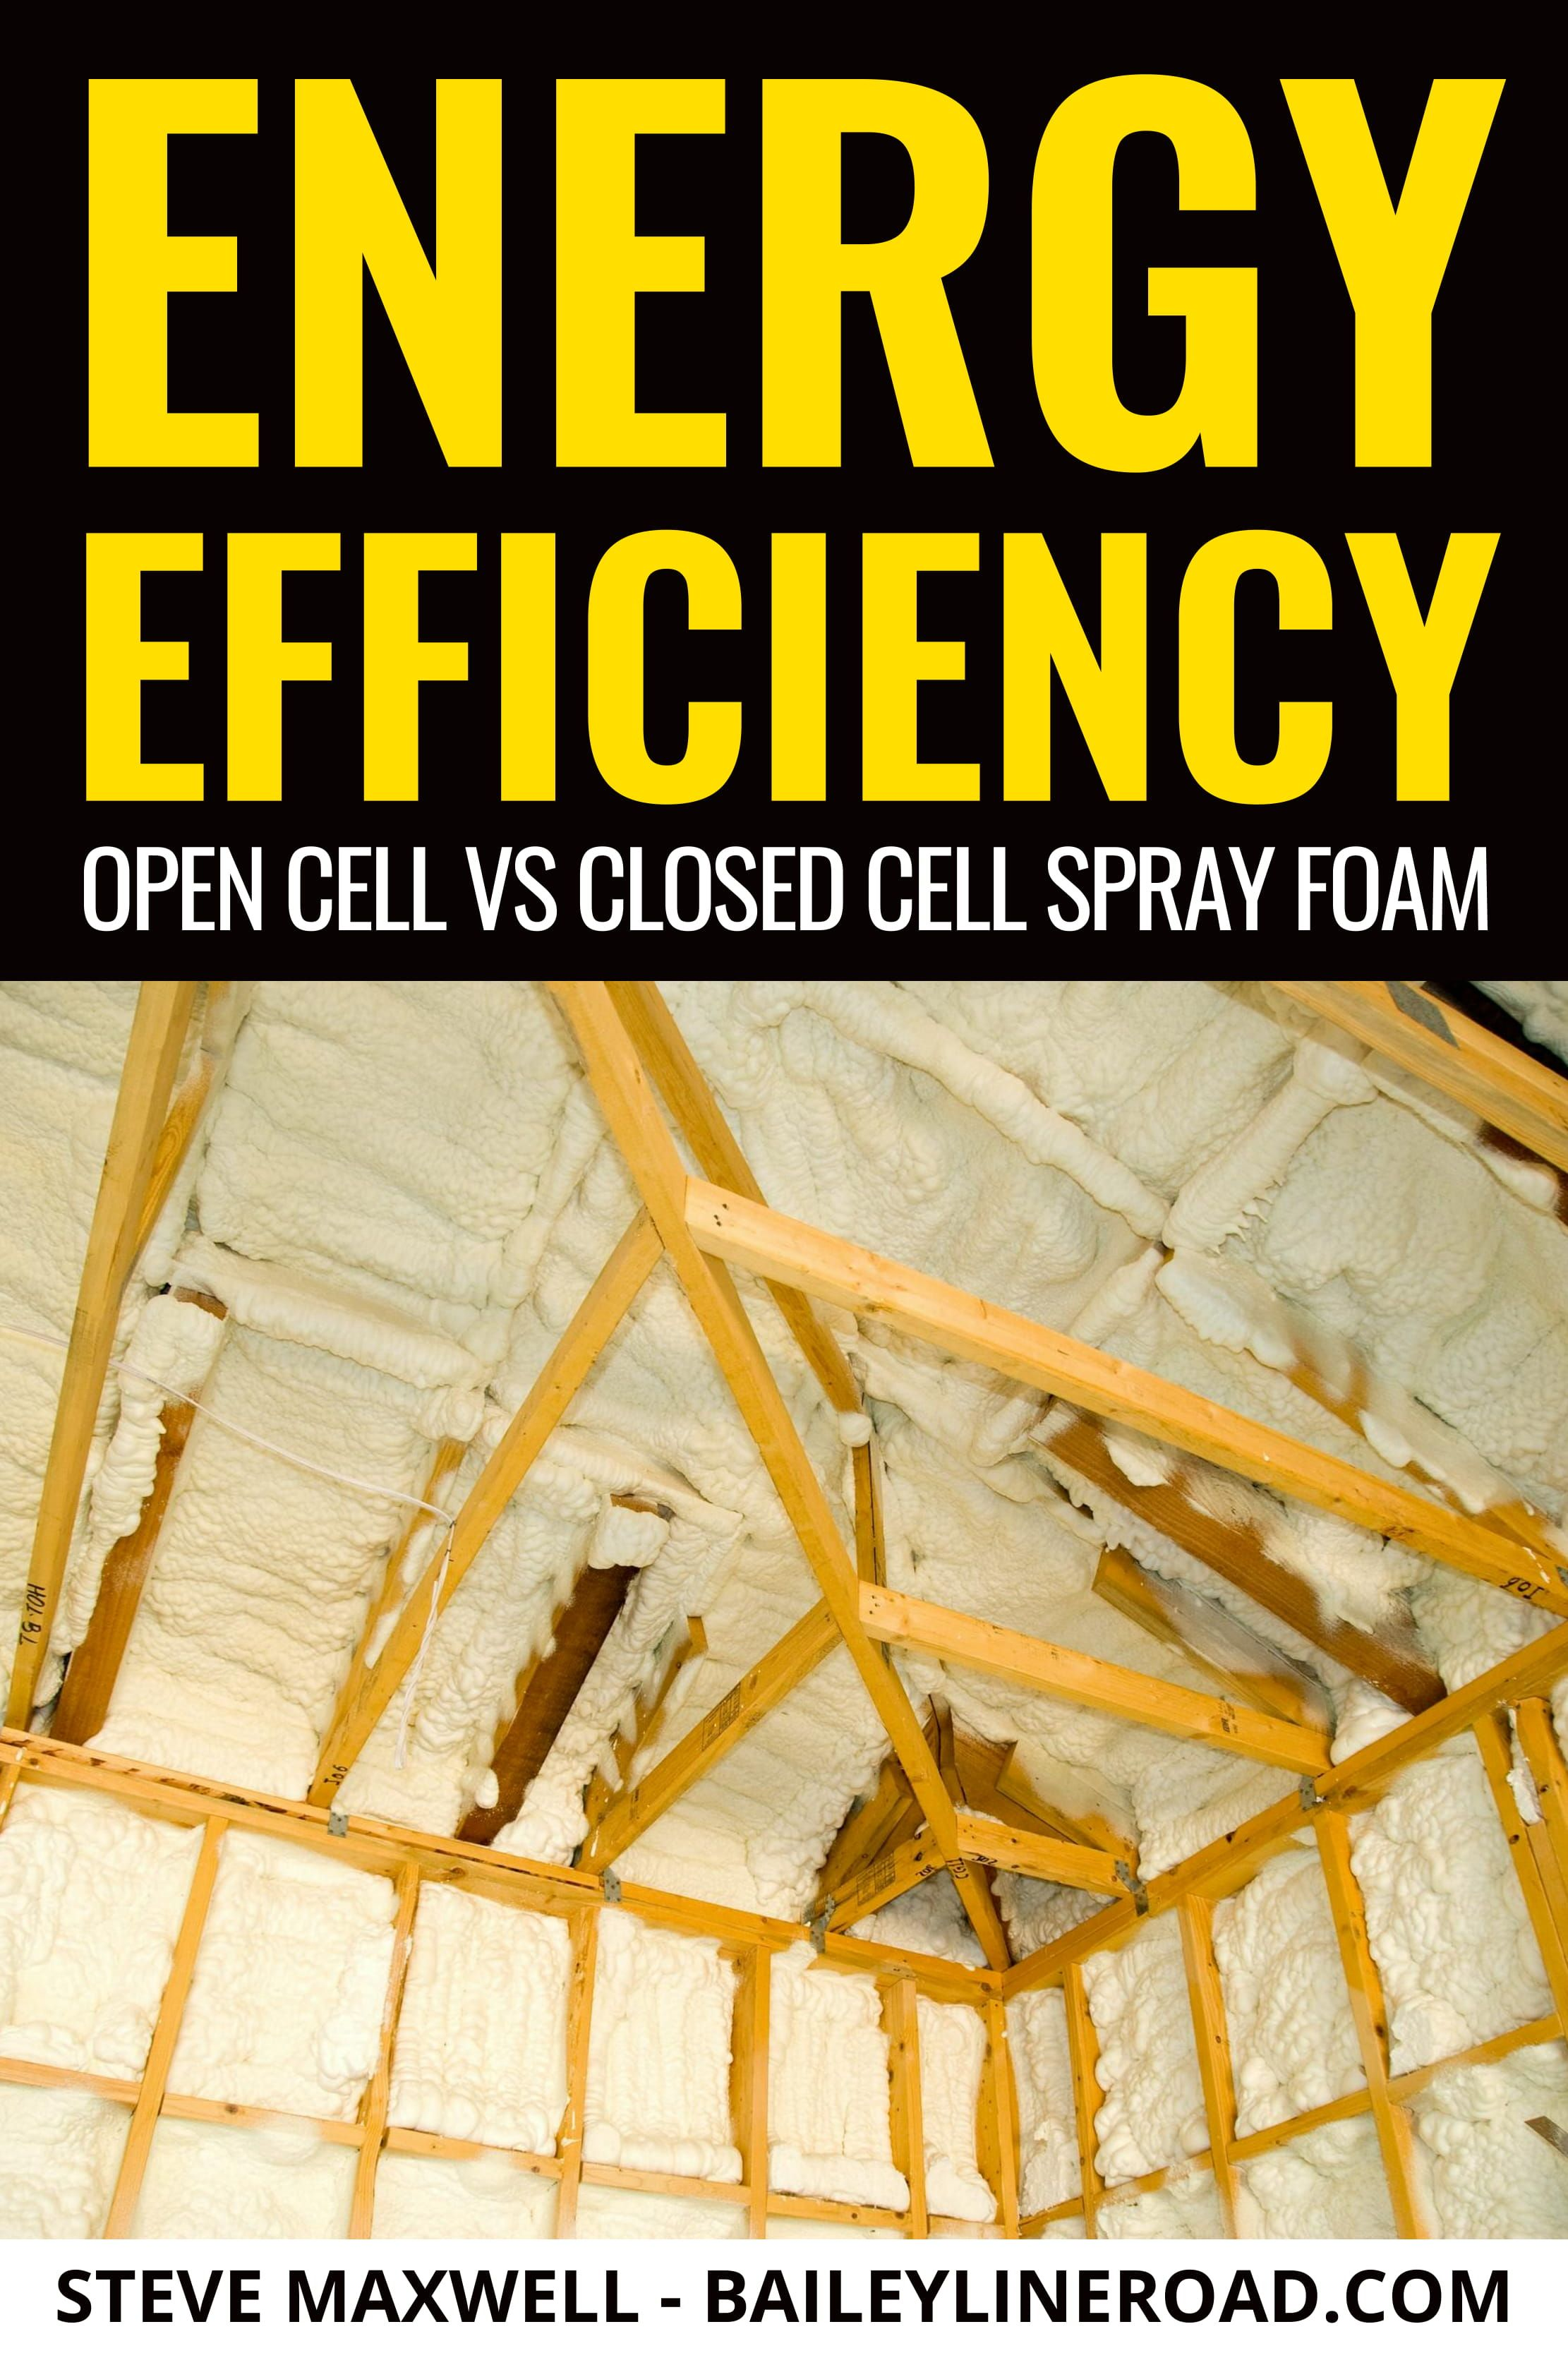 Energy Efficiency Open Cell Vs Closed Cell Spray Foam In 2020 Spray Foam Foam Spray Foam Insulation